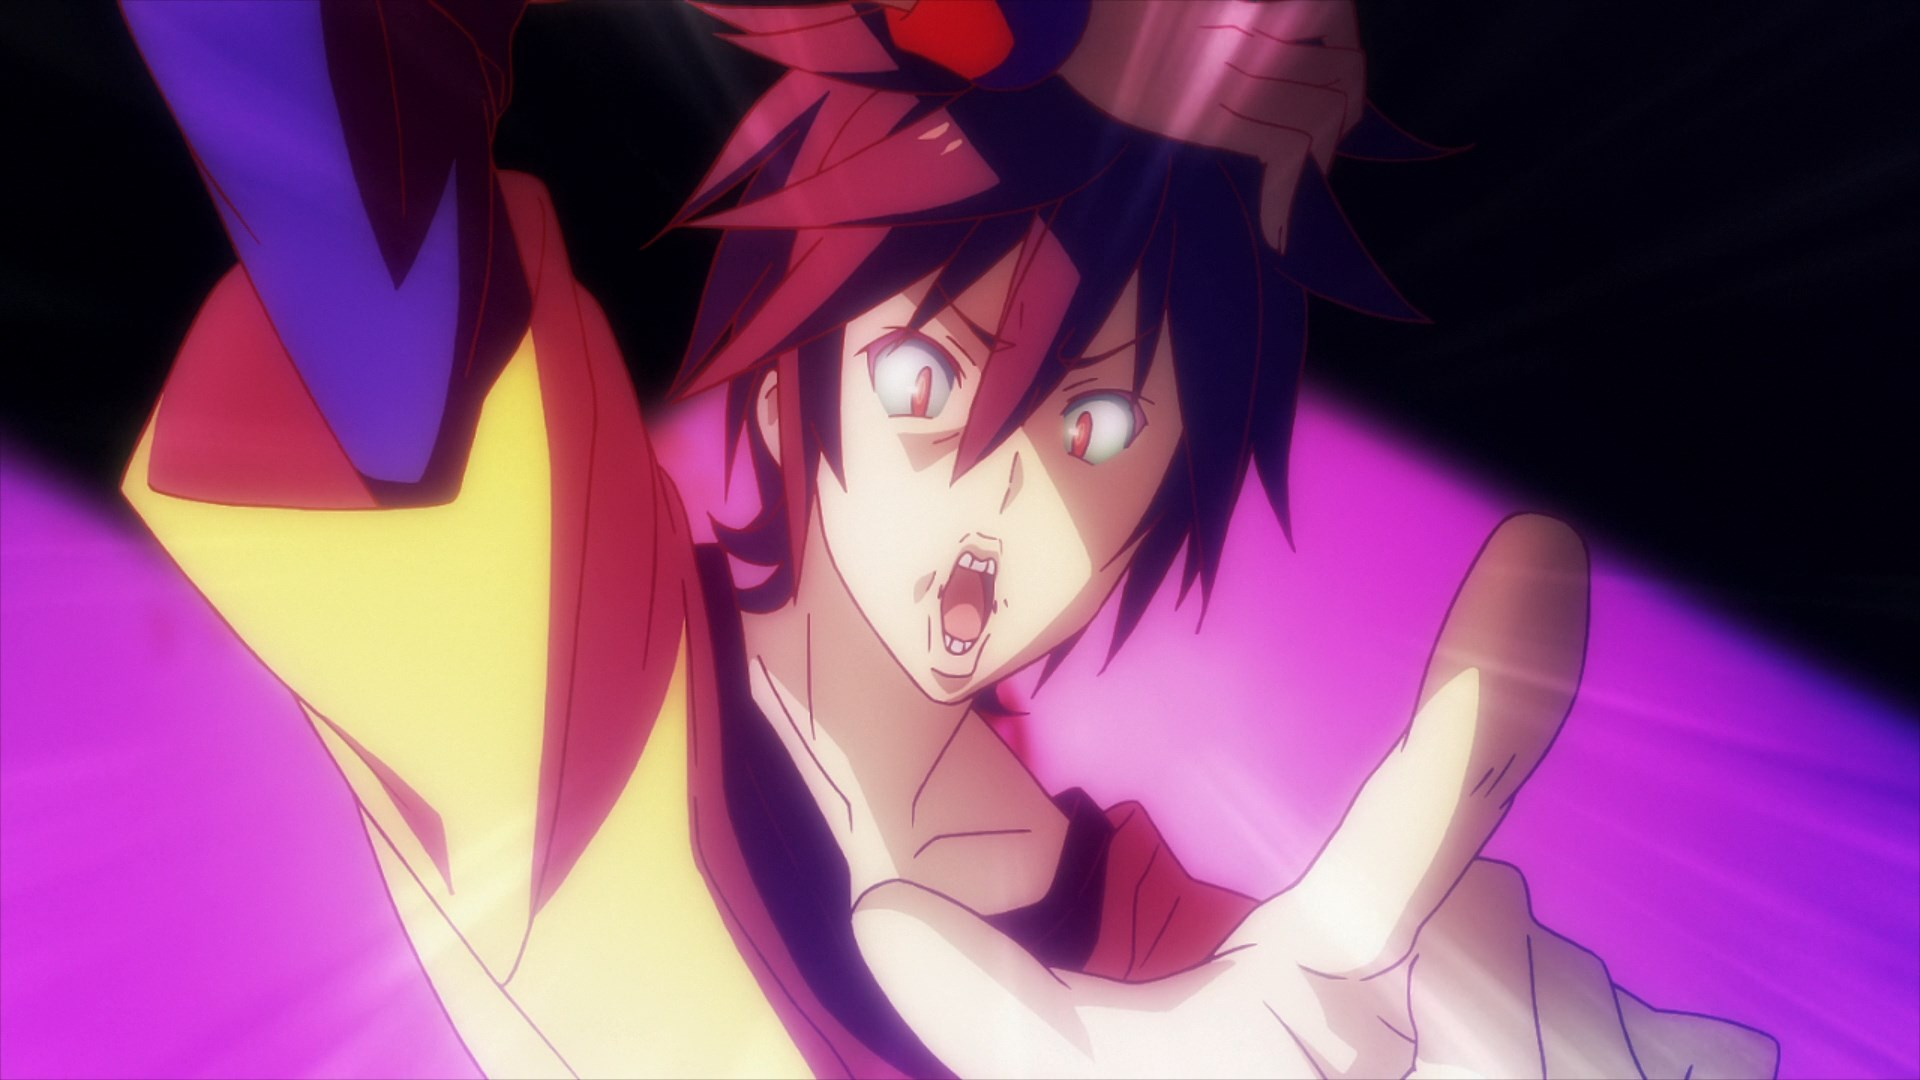 No Game No Life - 02.mkv_snapshot_08.20_[2015.12.28_19.57.46]